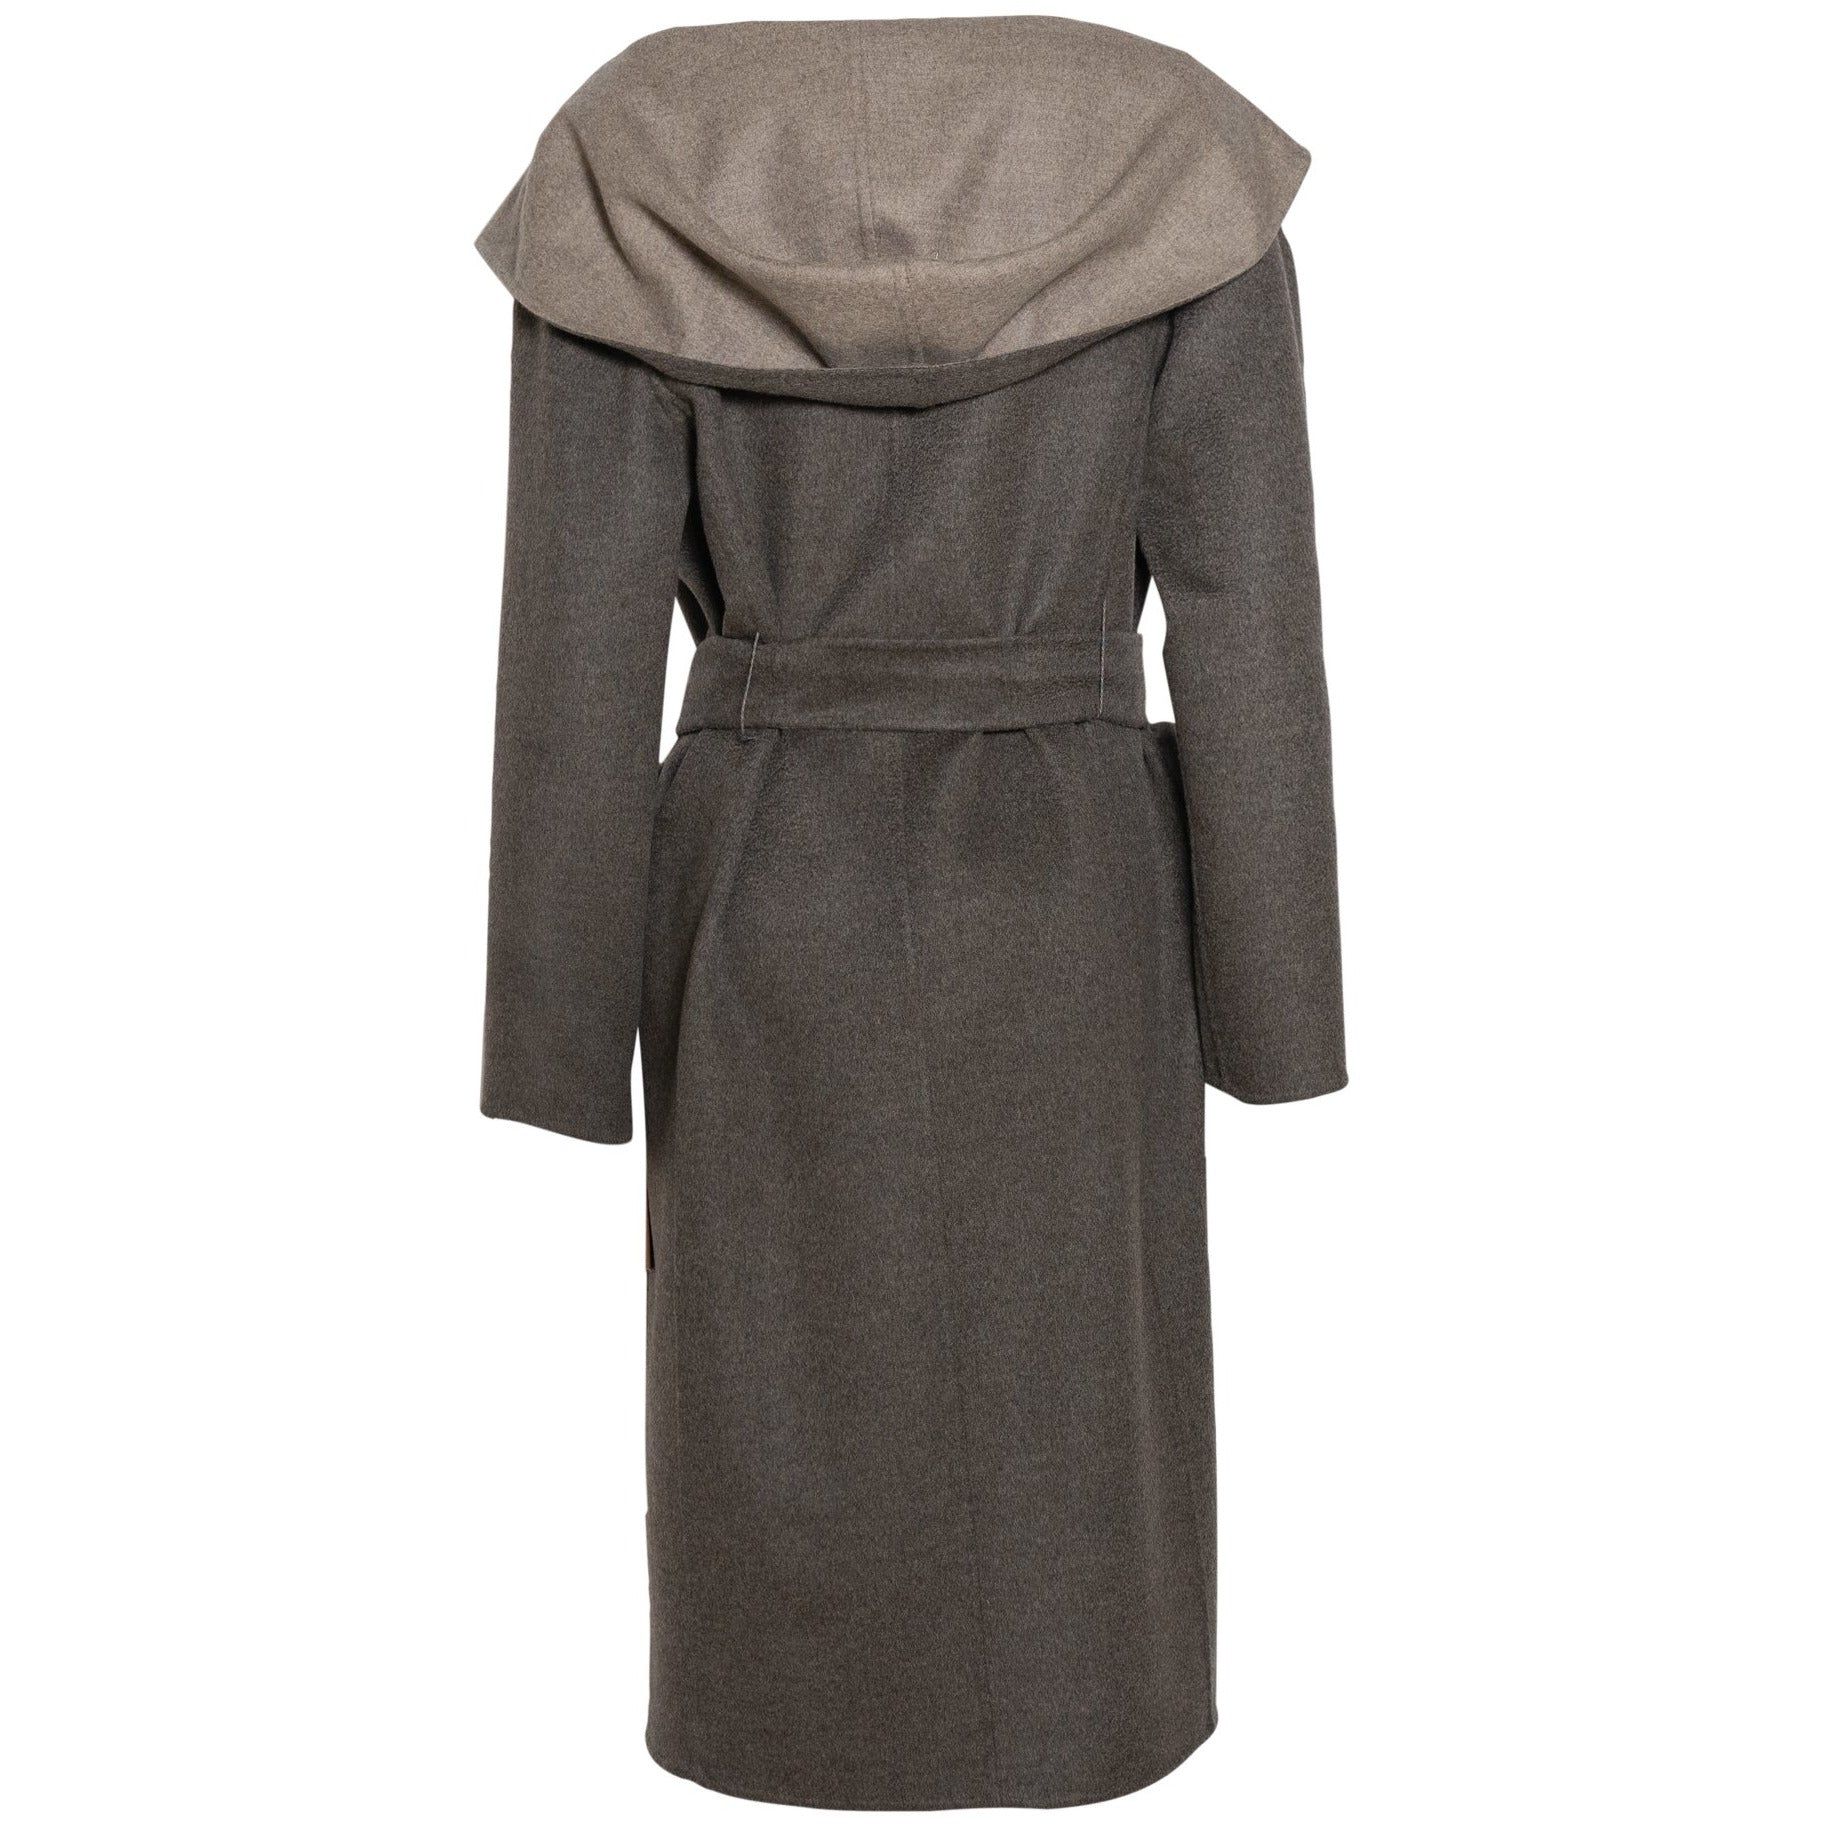 REVERSIBLE CASHMERE LONG COAT WITH MINK DETAILS